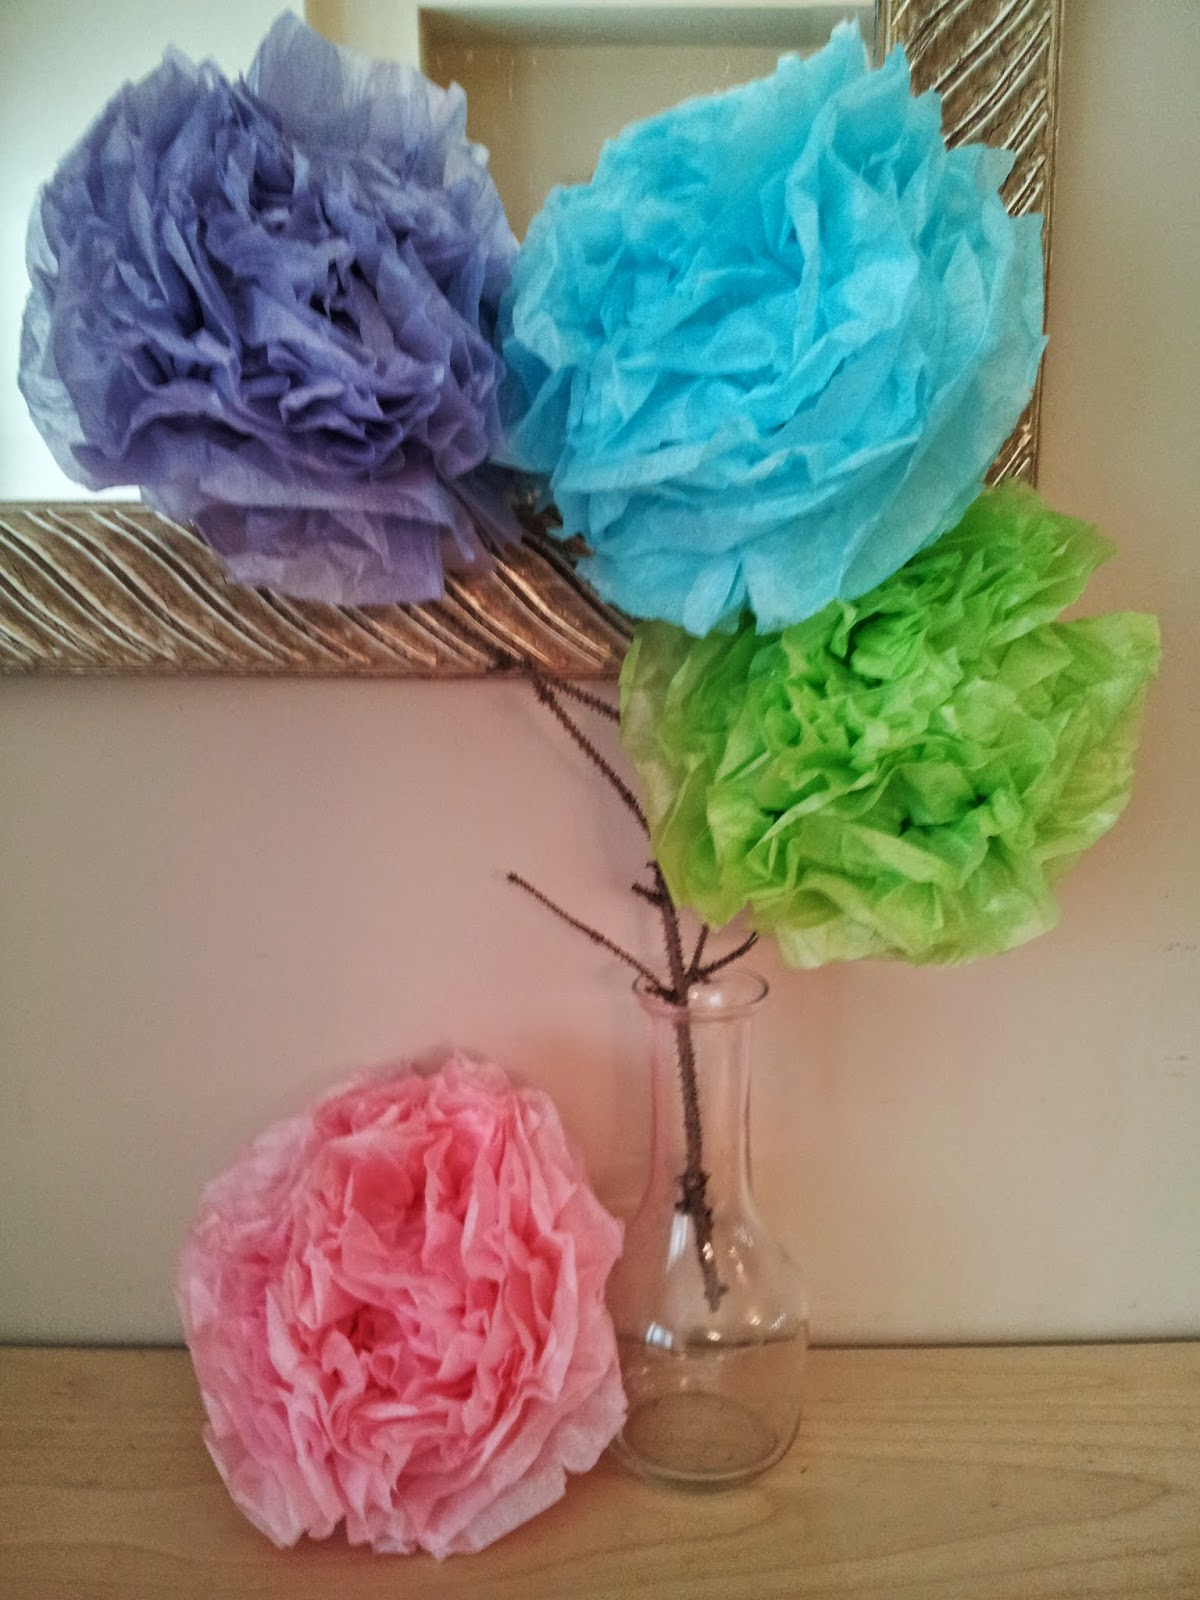 Tissue paper flowers, tissue paper puffs, crafts, kids crafts, spring crafts